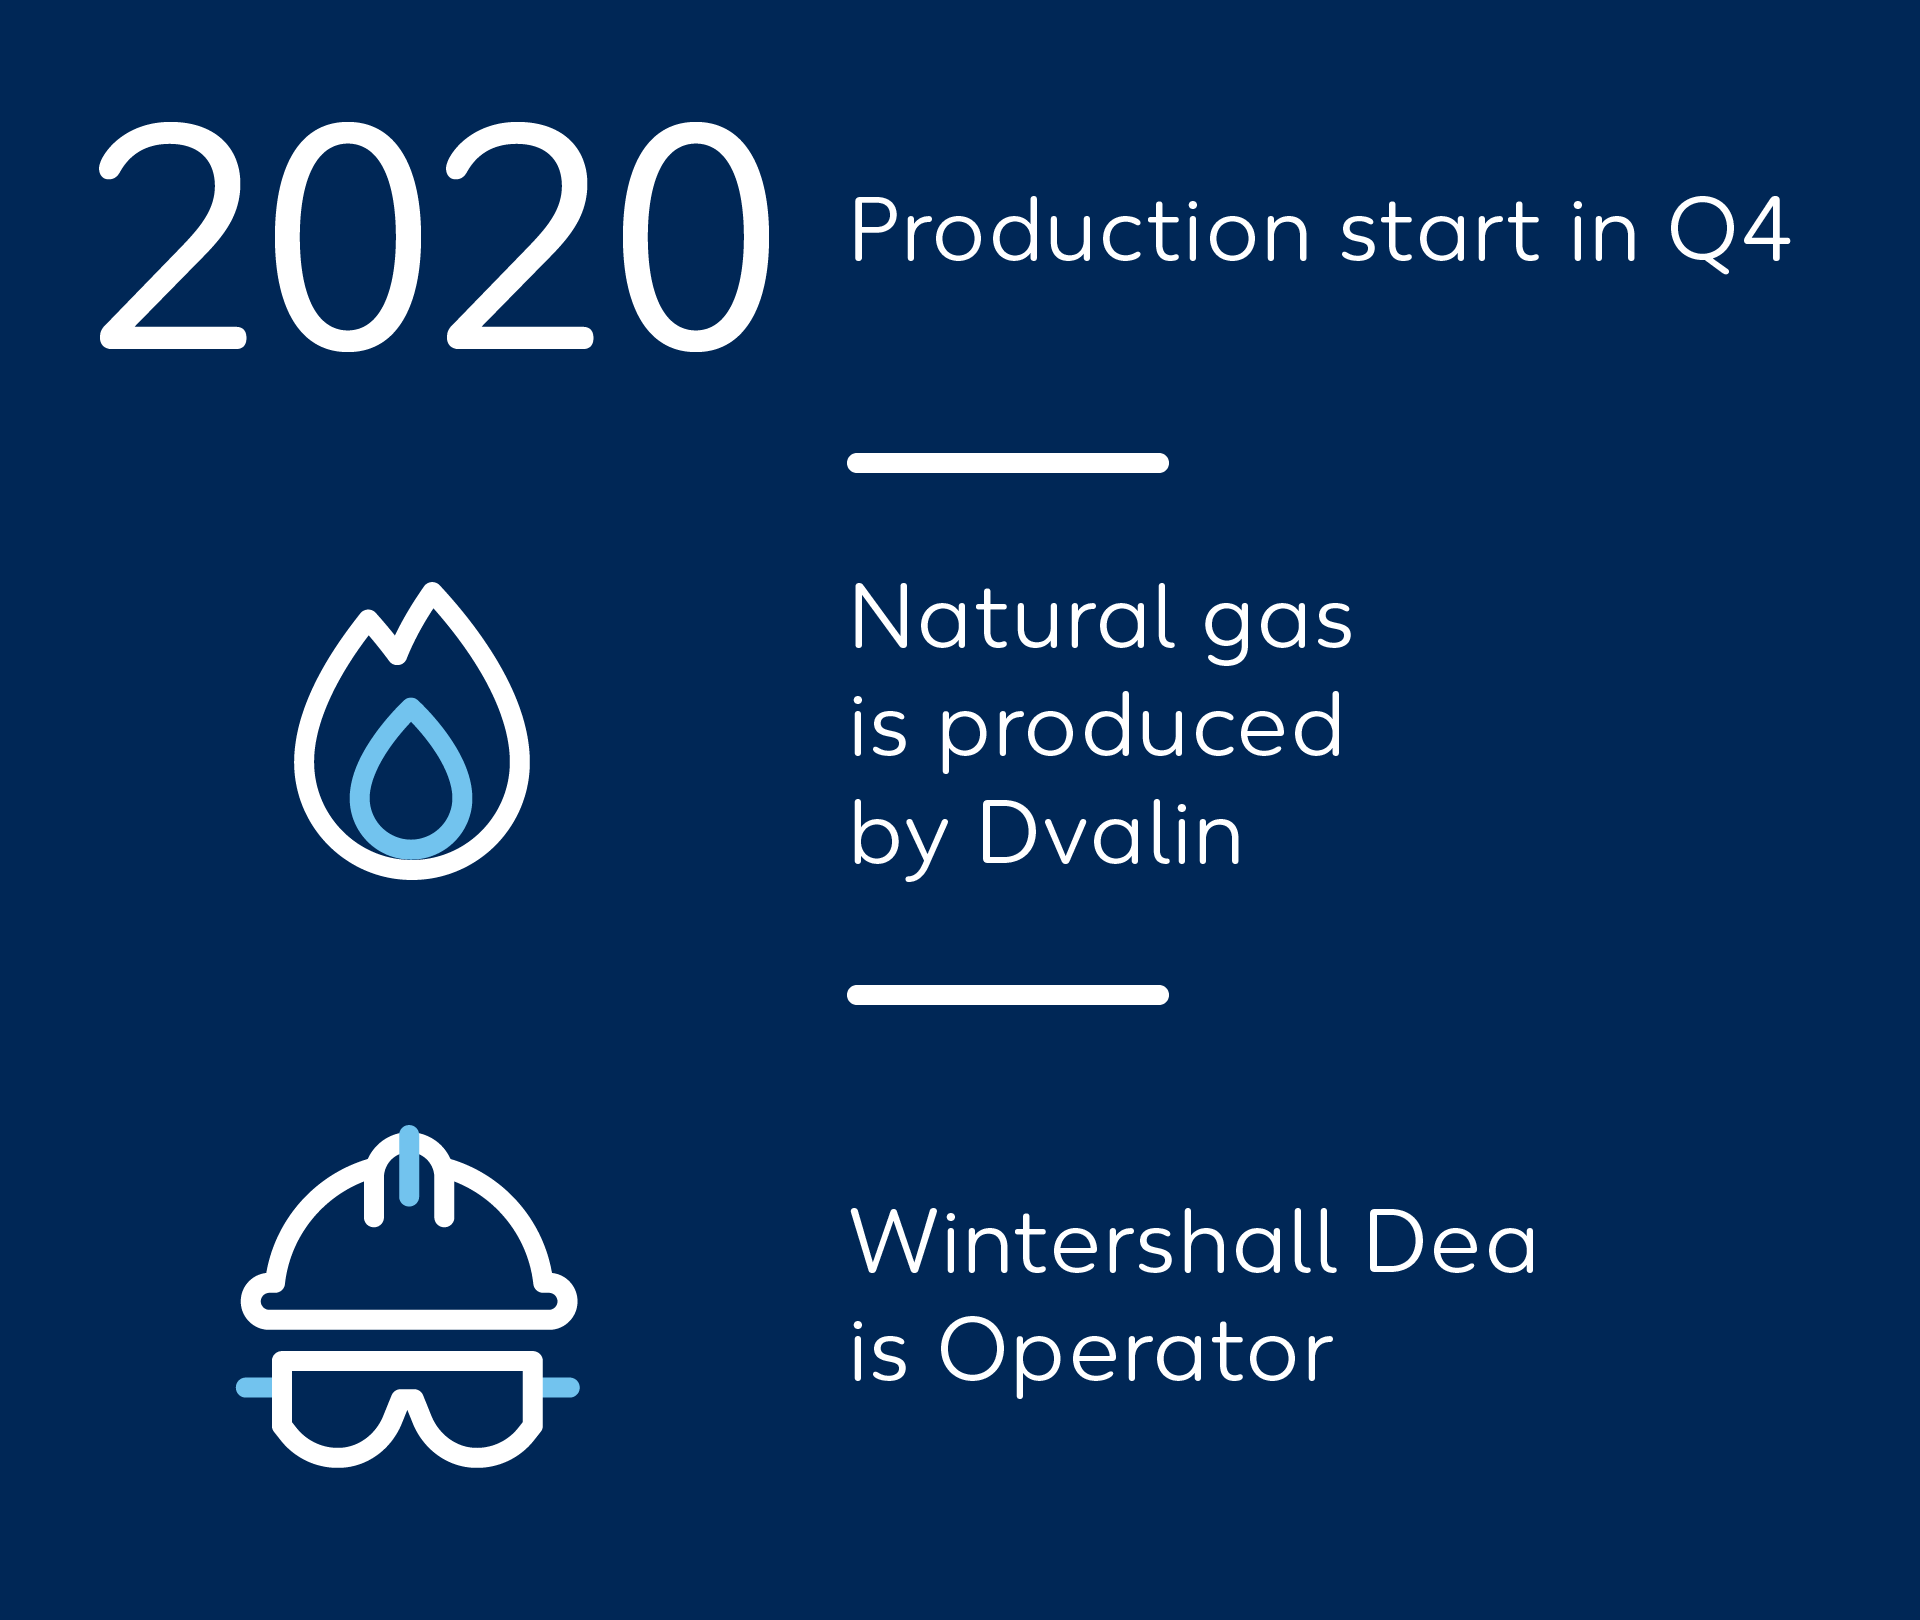 Wintershall Dea Quickfact Dvalin